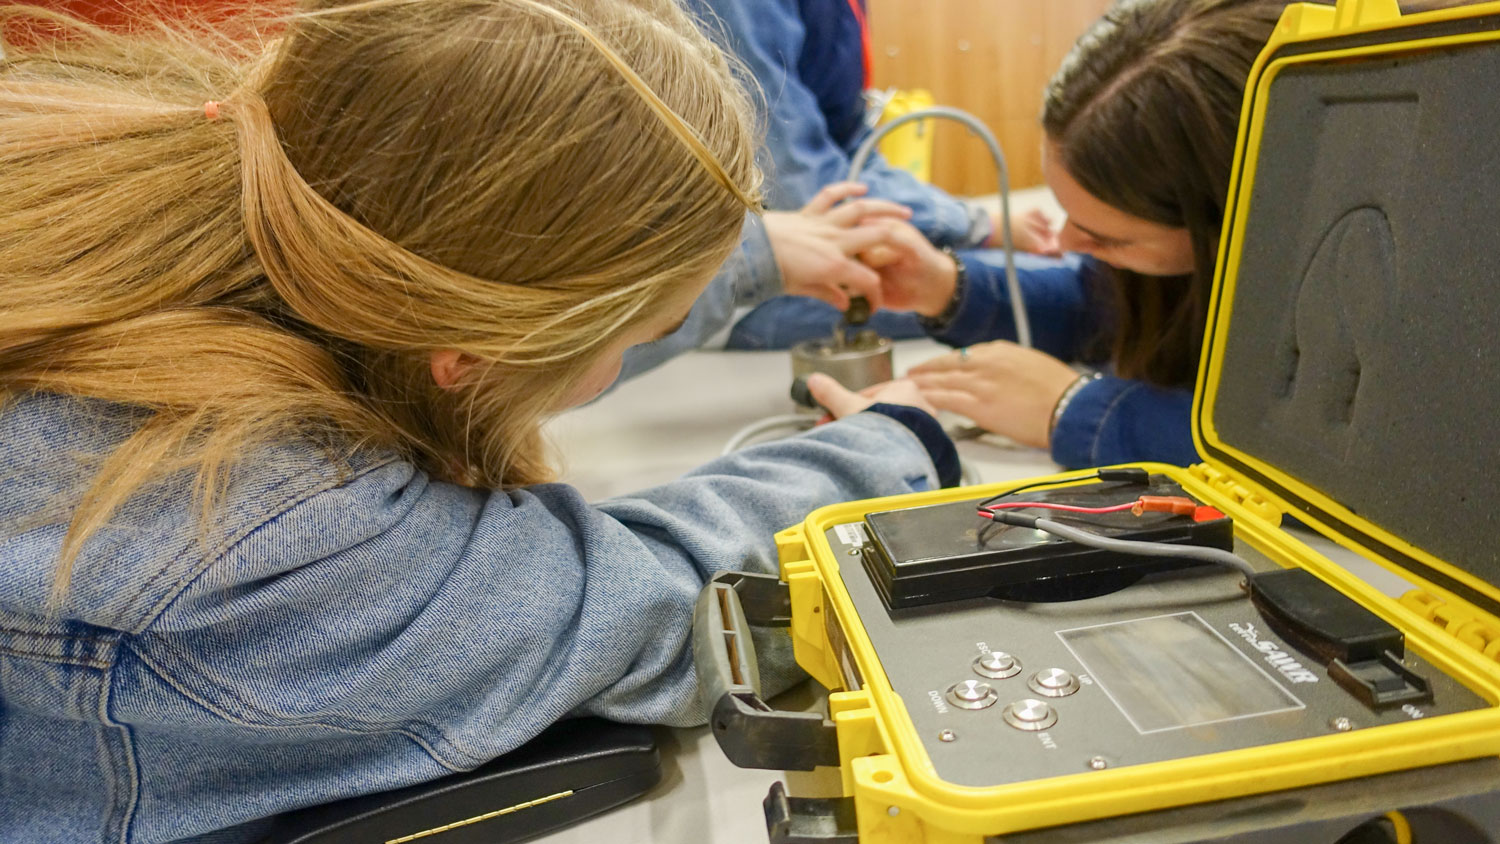 Recently, school students participated in a hands-on geoscience workshop at the ANU. Here we see students discovering how seismologists record earthquakes and research earthquake hazards using an AuScope seismometer. Image:  Larisa Medenis .